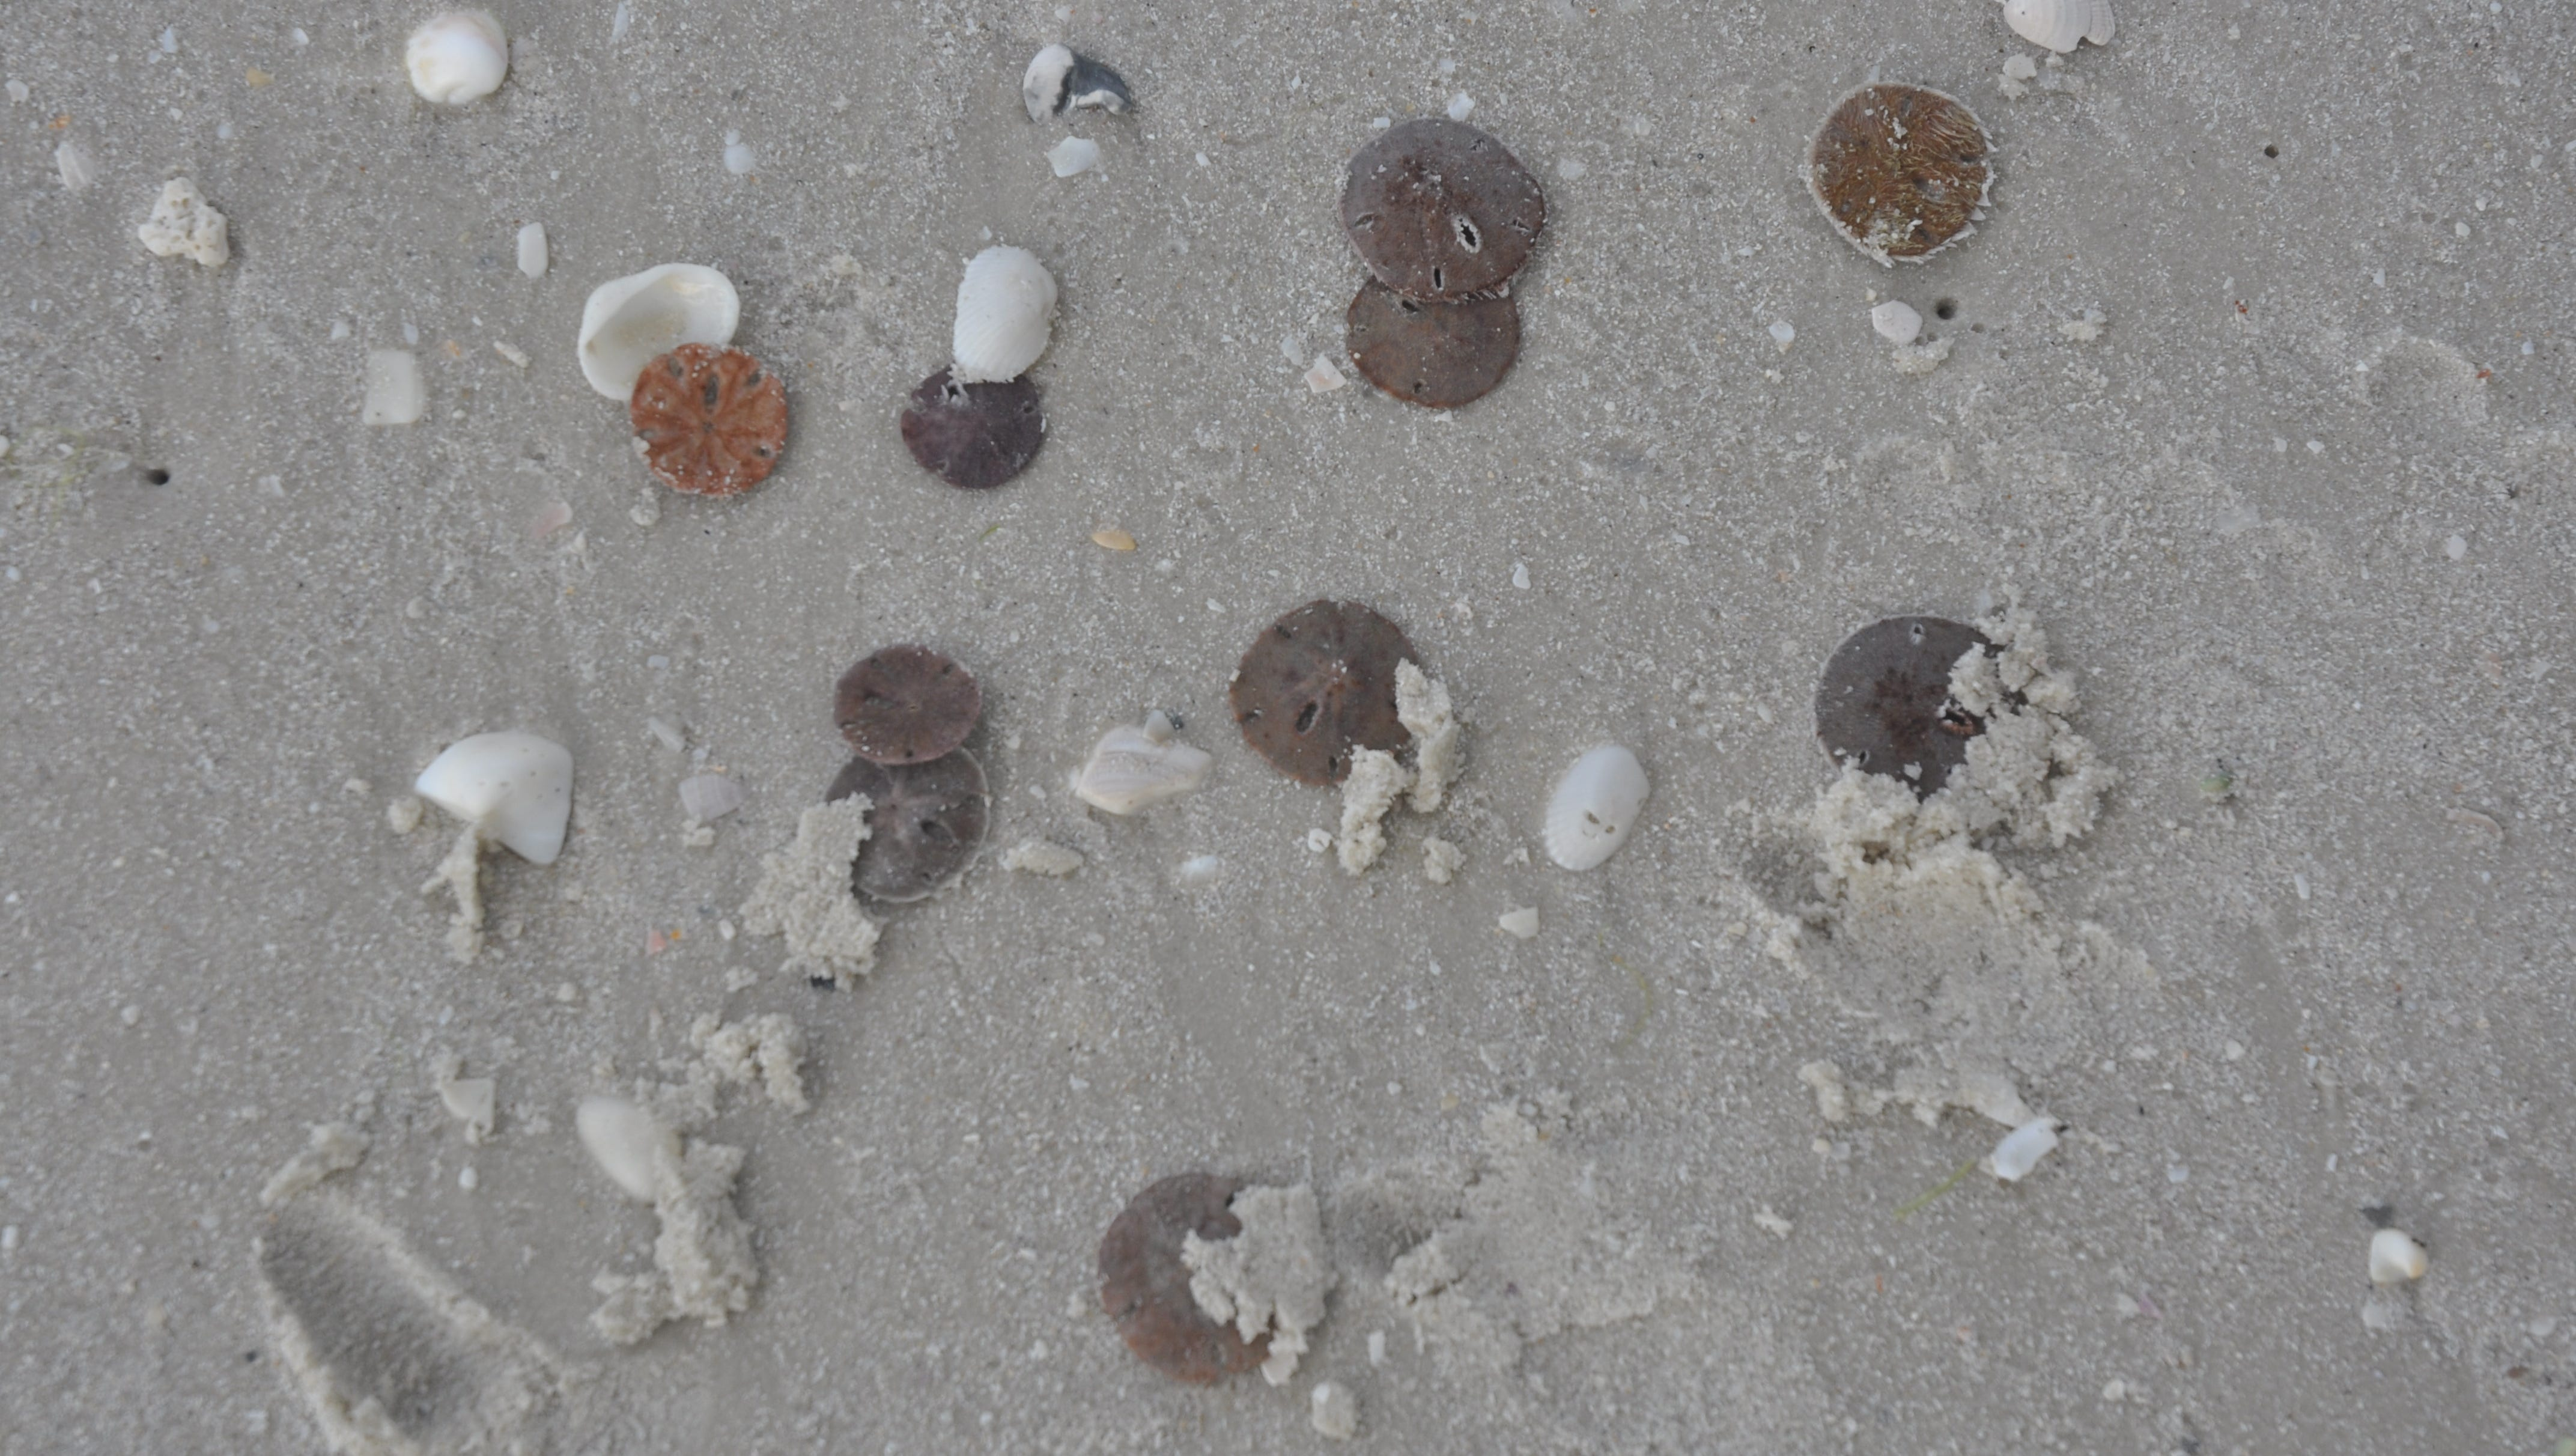 Thousands Of Sand Dollars Found Dead On The Beach In Florida